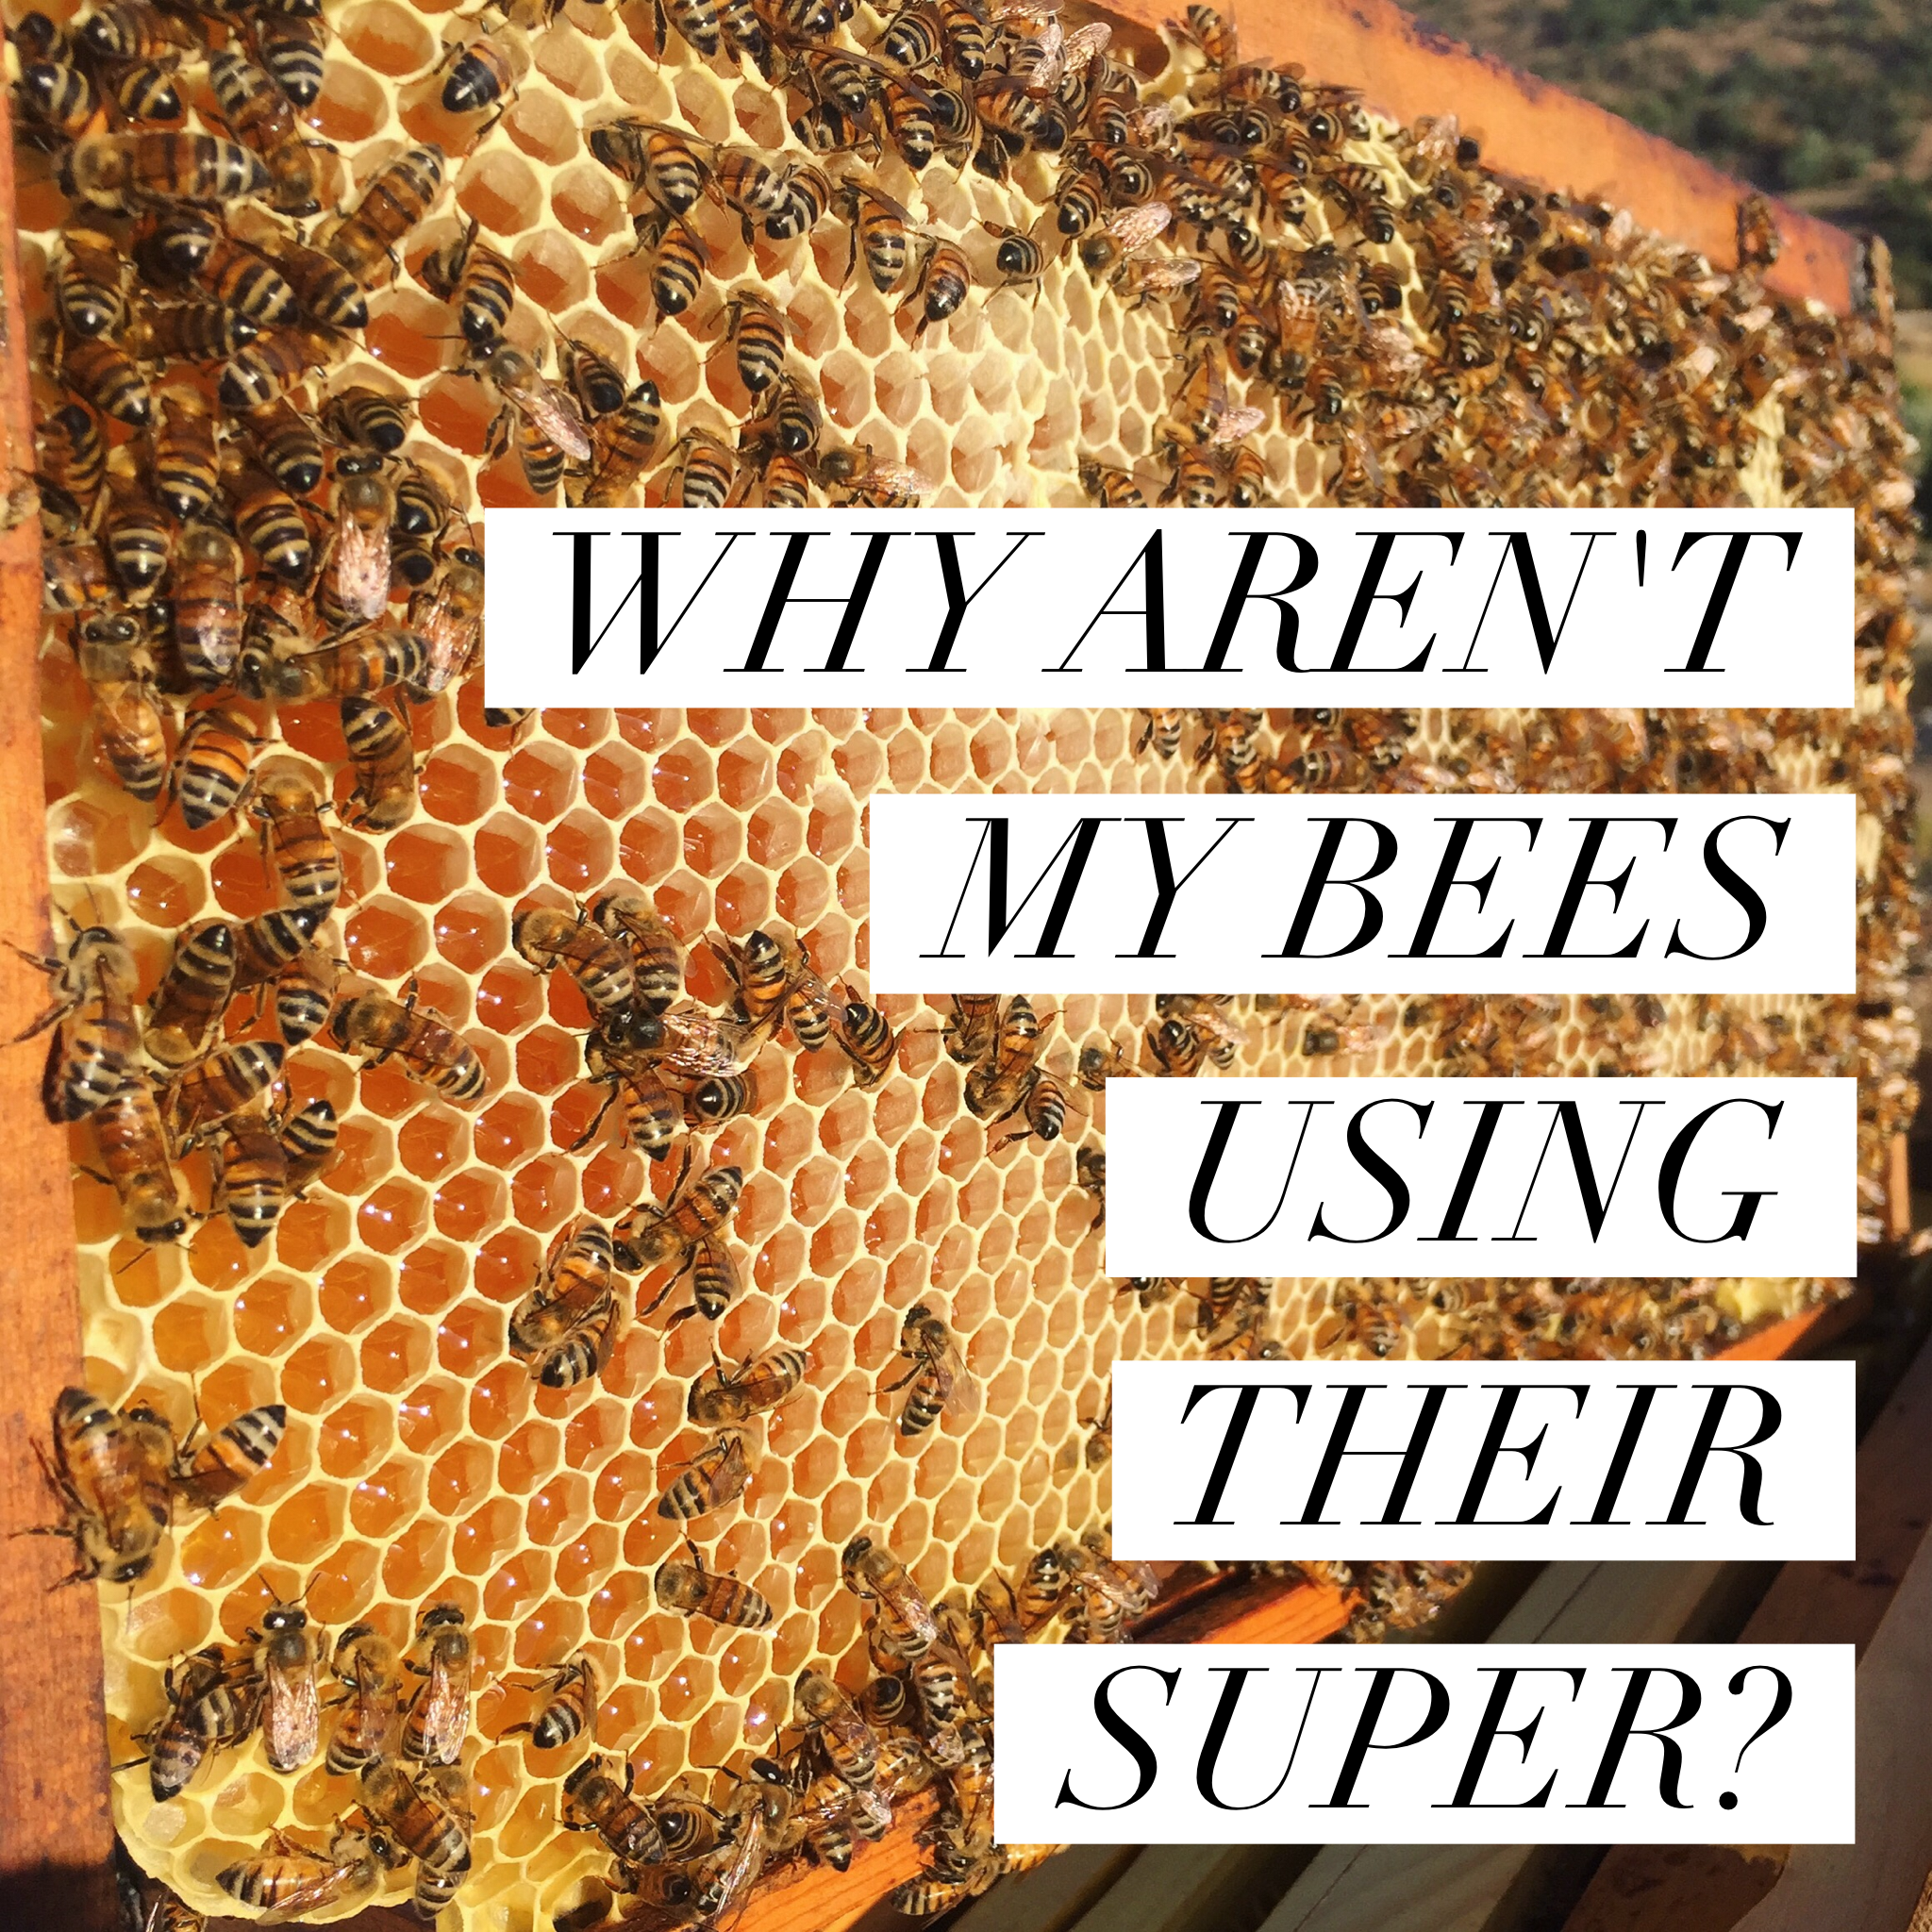 why aren't my bees filling their super?